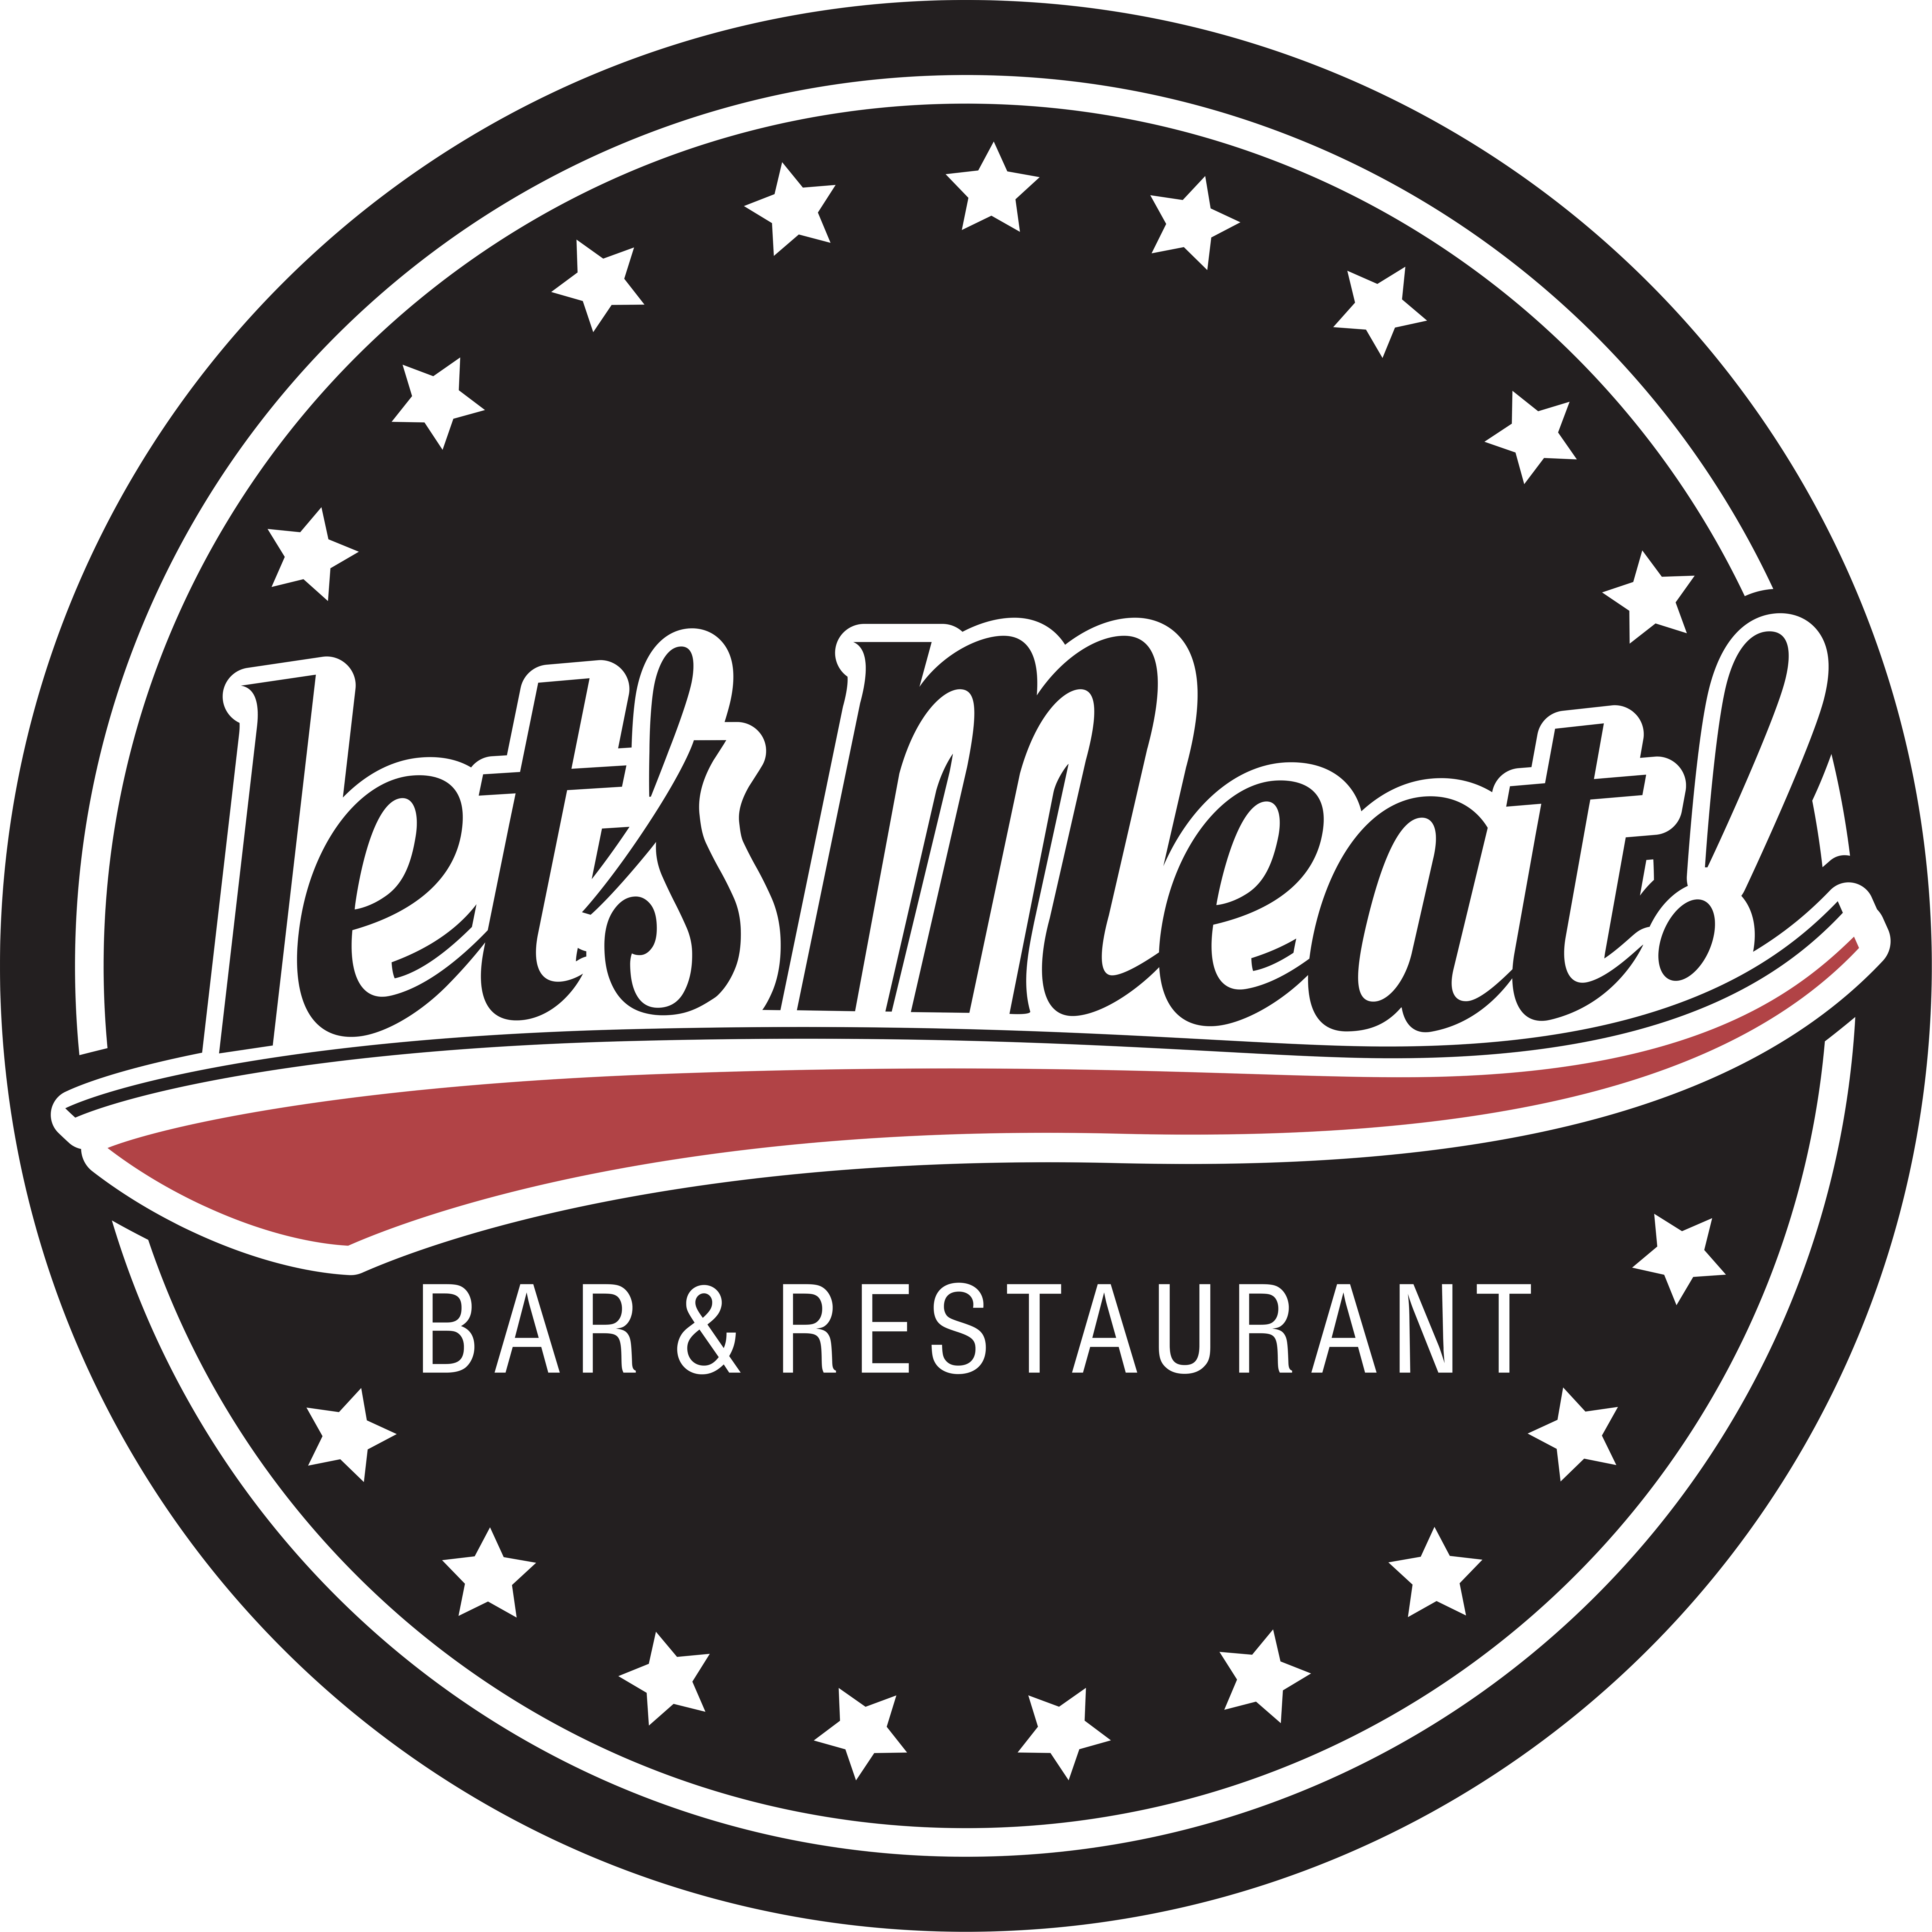 Let's Meat